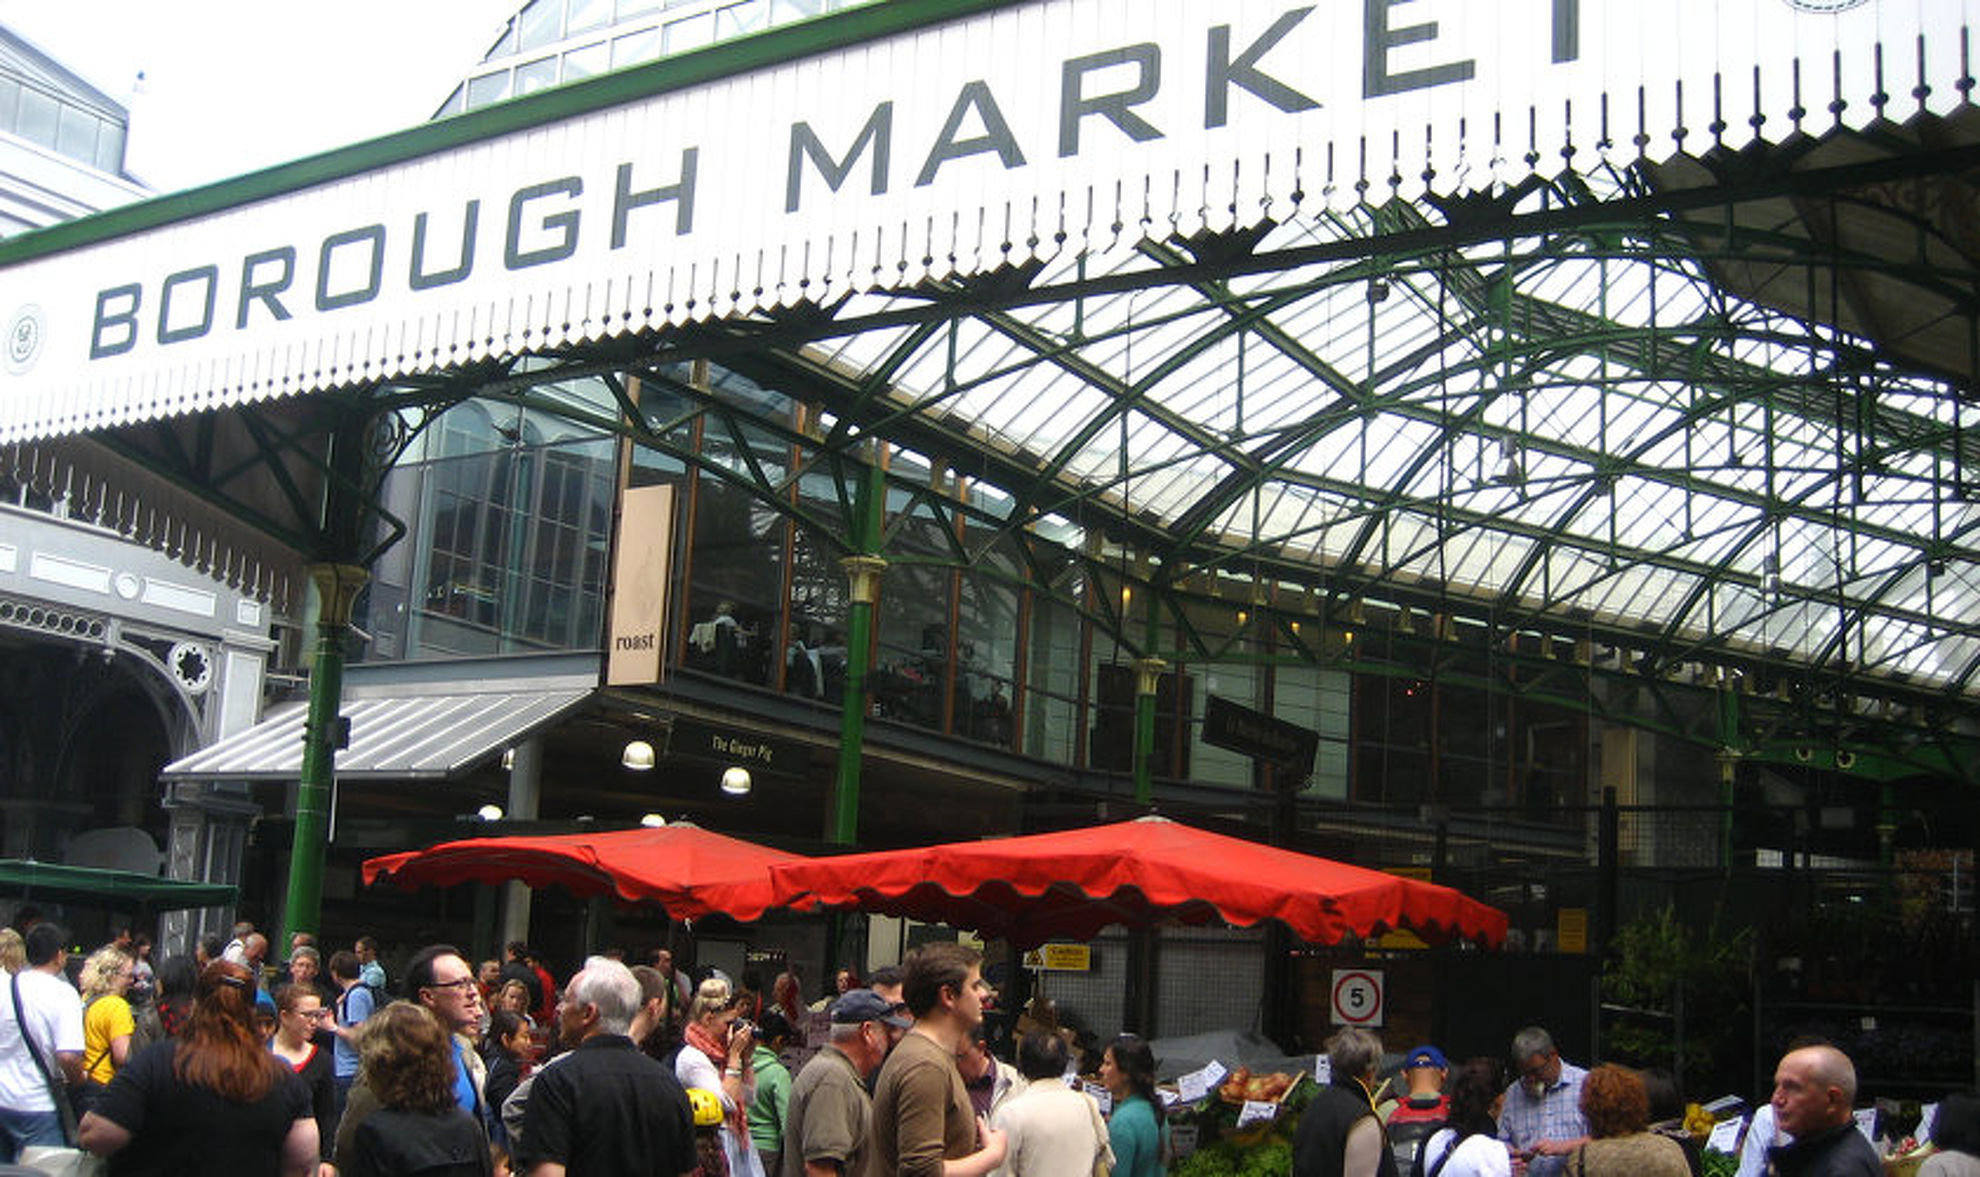 Explore Borough Market